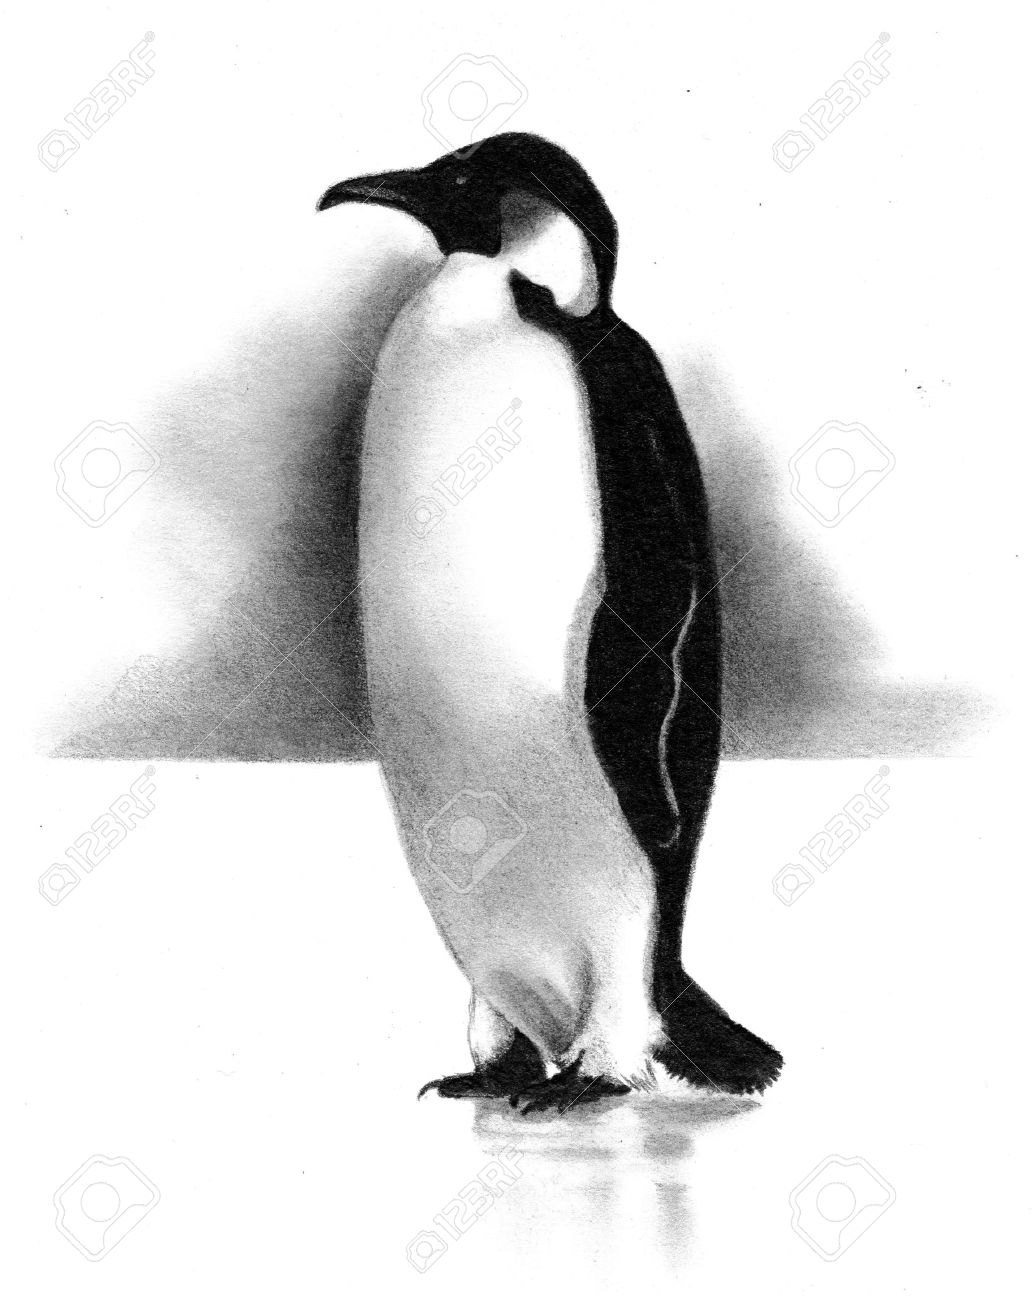 Freehand pencil drawing of penguin